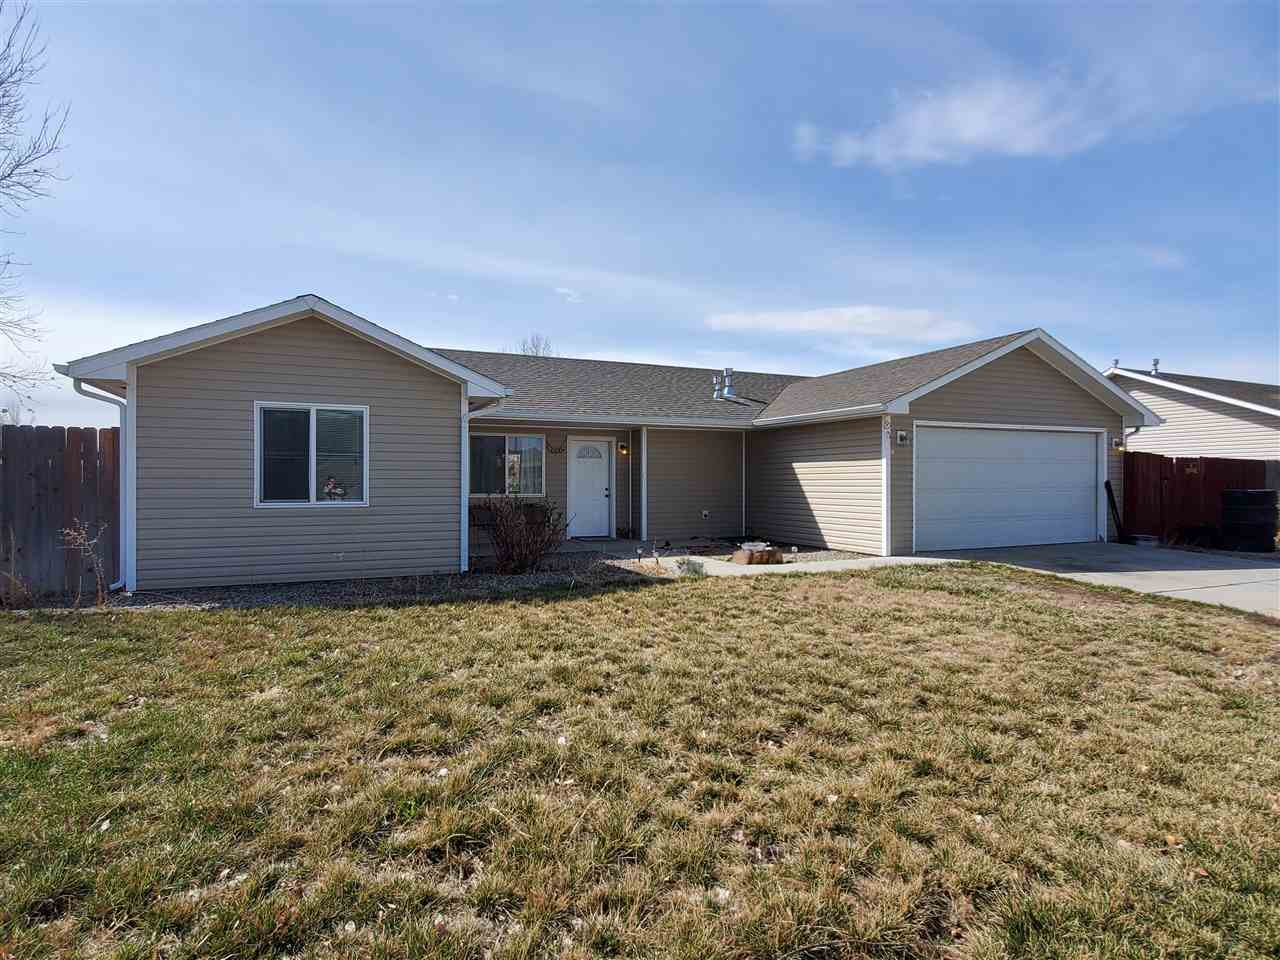 3267 1/2 F 1/2 Road, Clifton, CO 81520